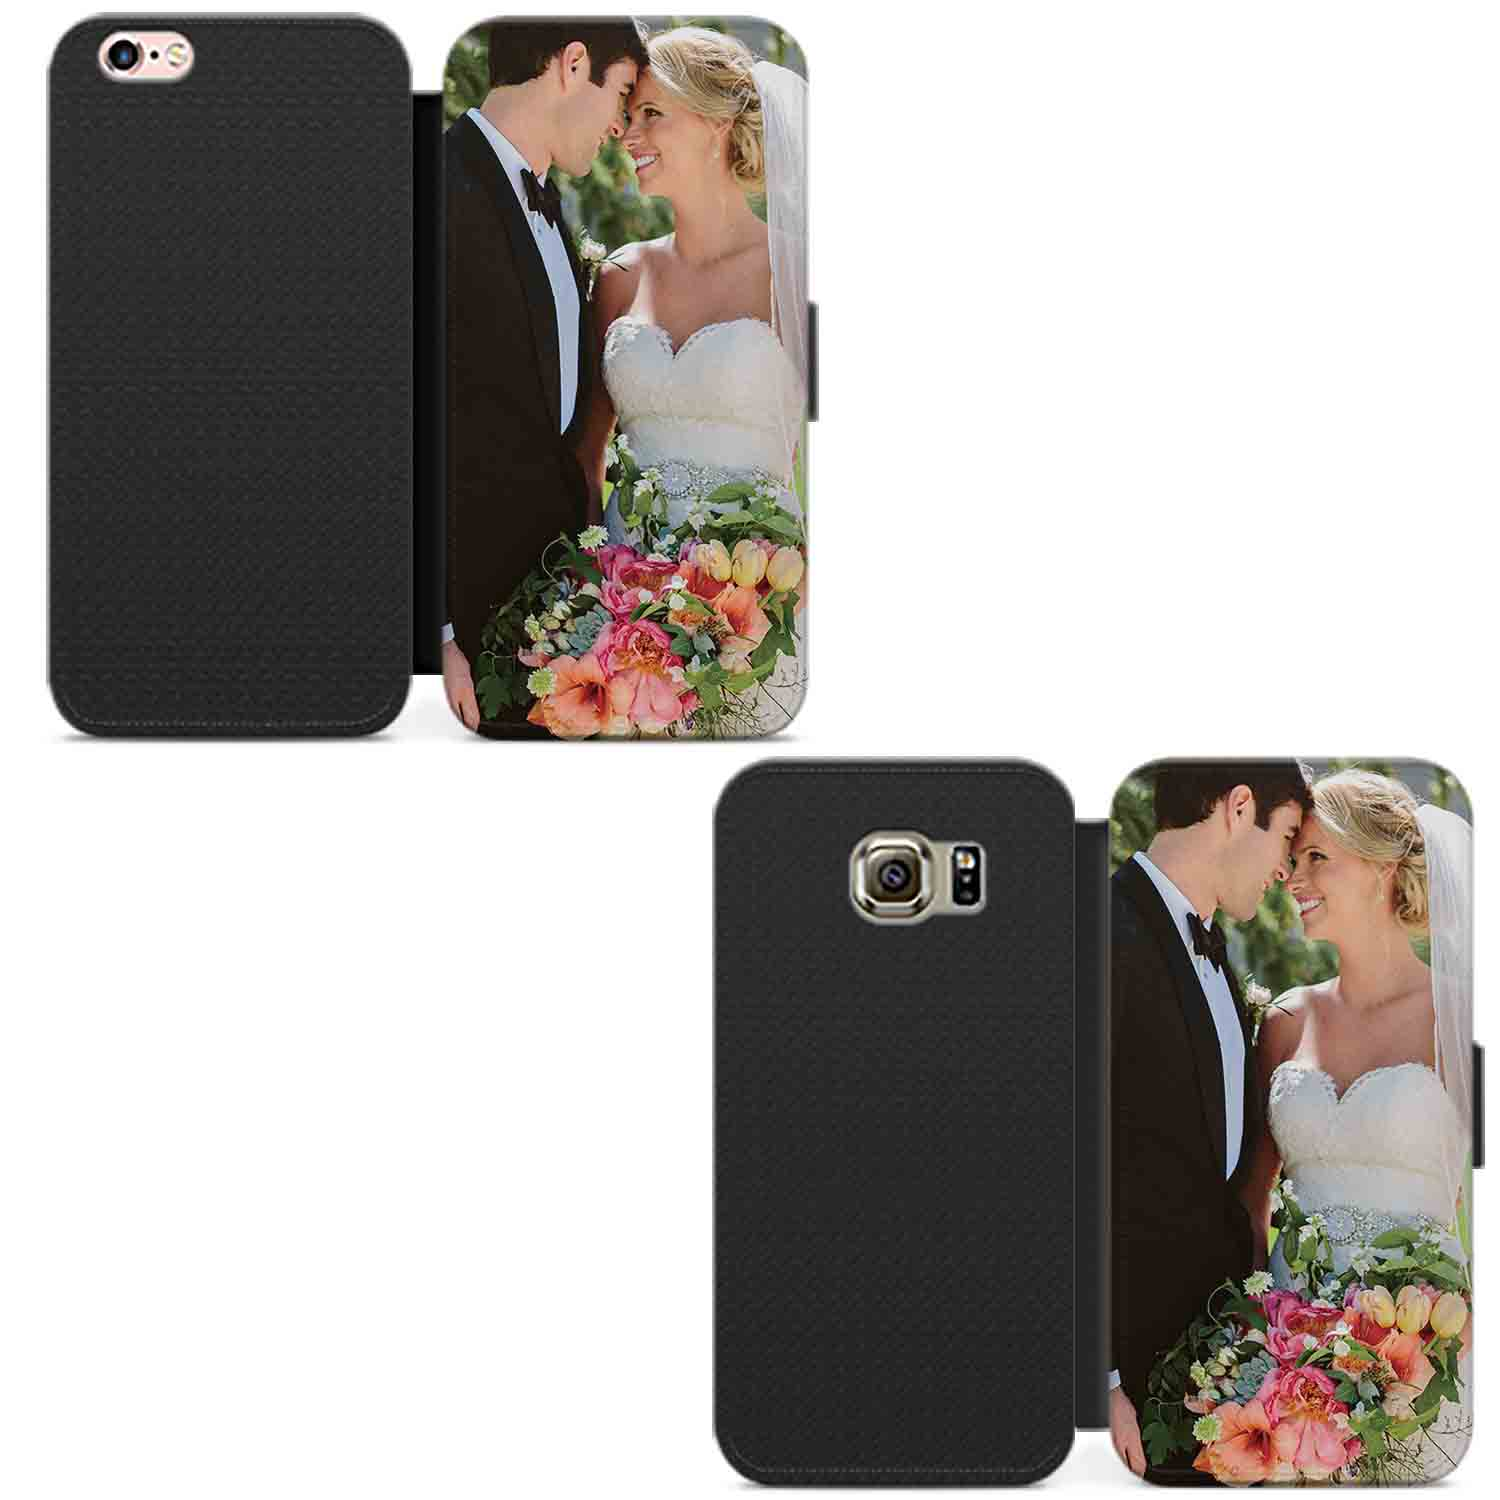 PERSONALISED-PHOTO-PHONE-CASE-WALLET-LEATHER-FLIP-COVER-CUSTOMISED-PICTURE-IMAGE thumbnail 4